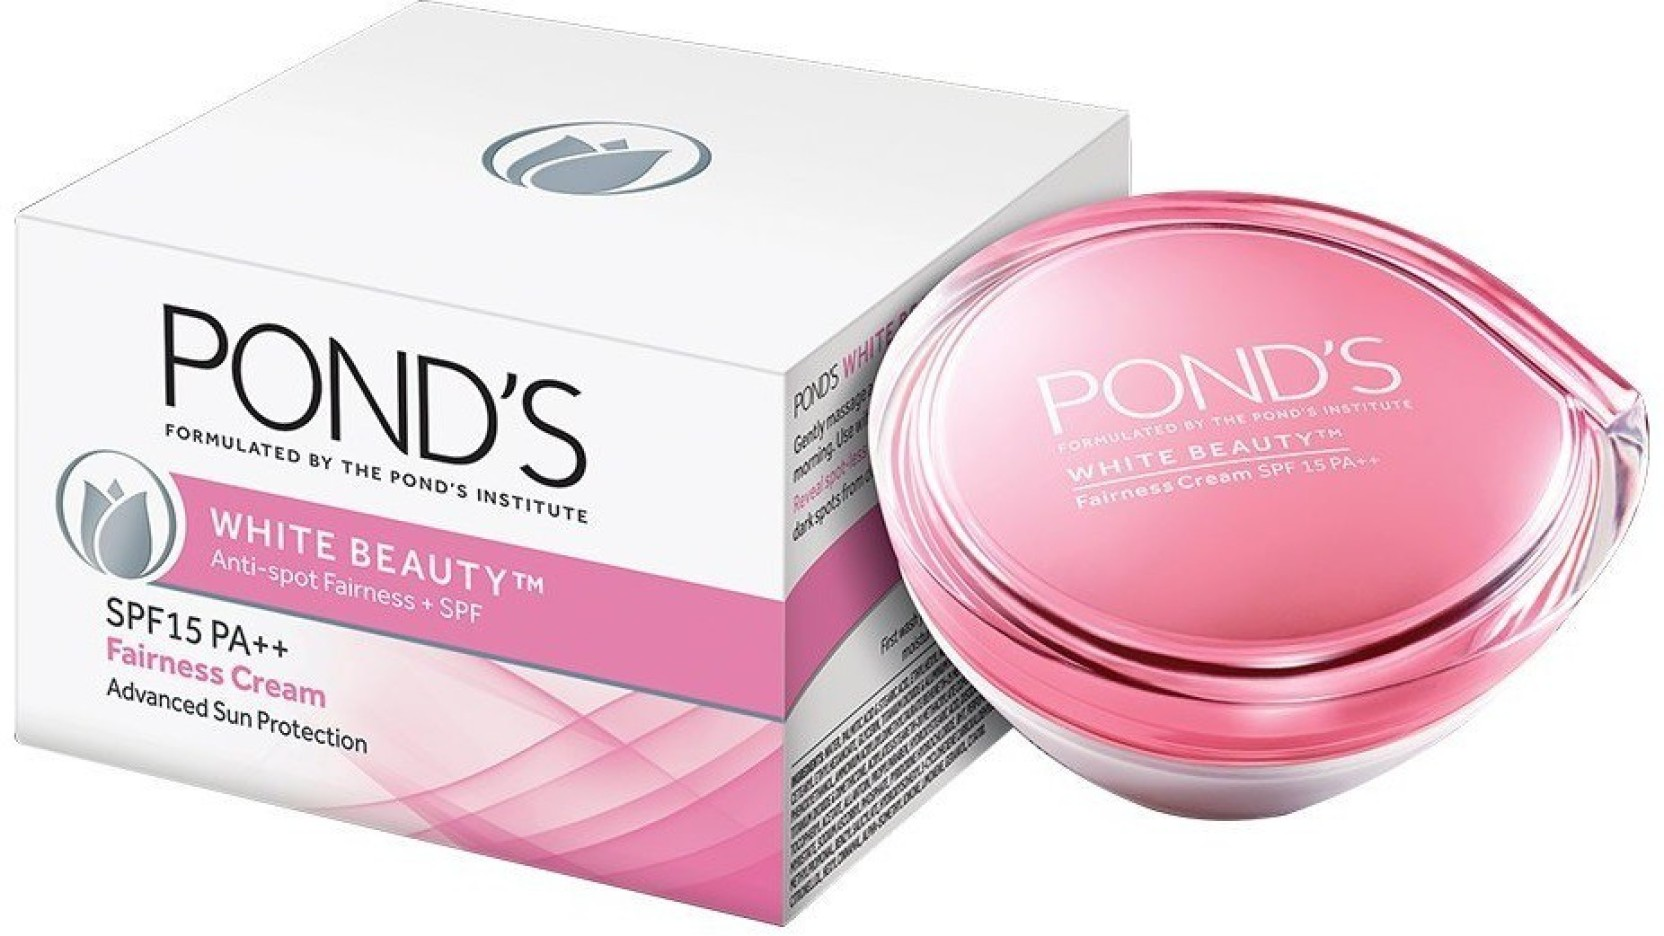 Ponds White Beauty Anti Spot Fairness SPF 15 Day Cream-1